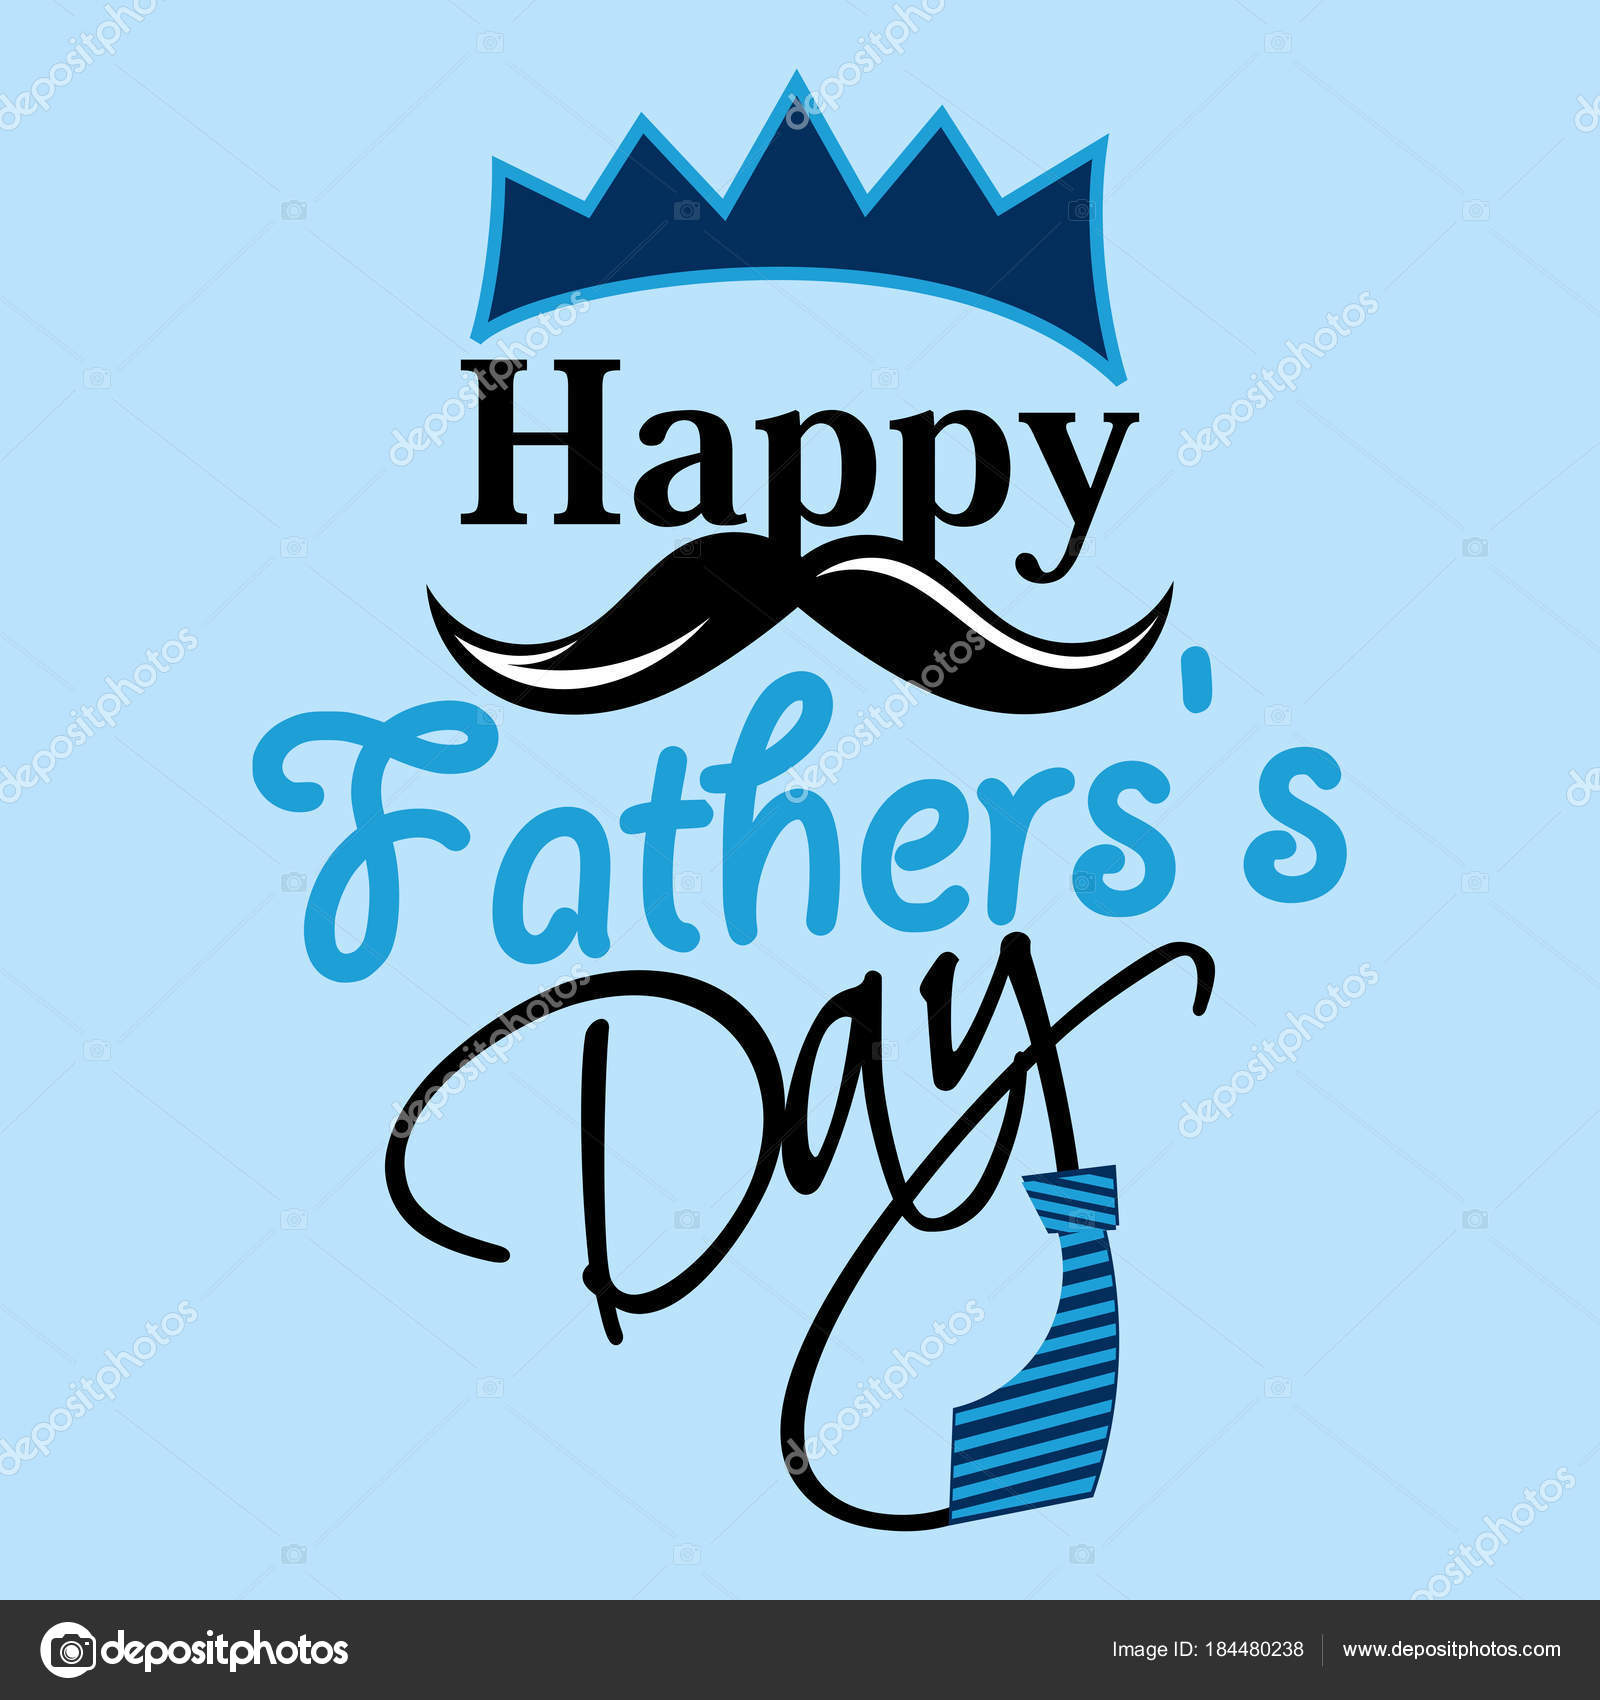 Happy Fathers Day Greeting Card Stock Vector Canbedone 184480238